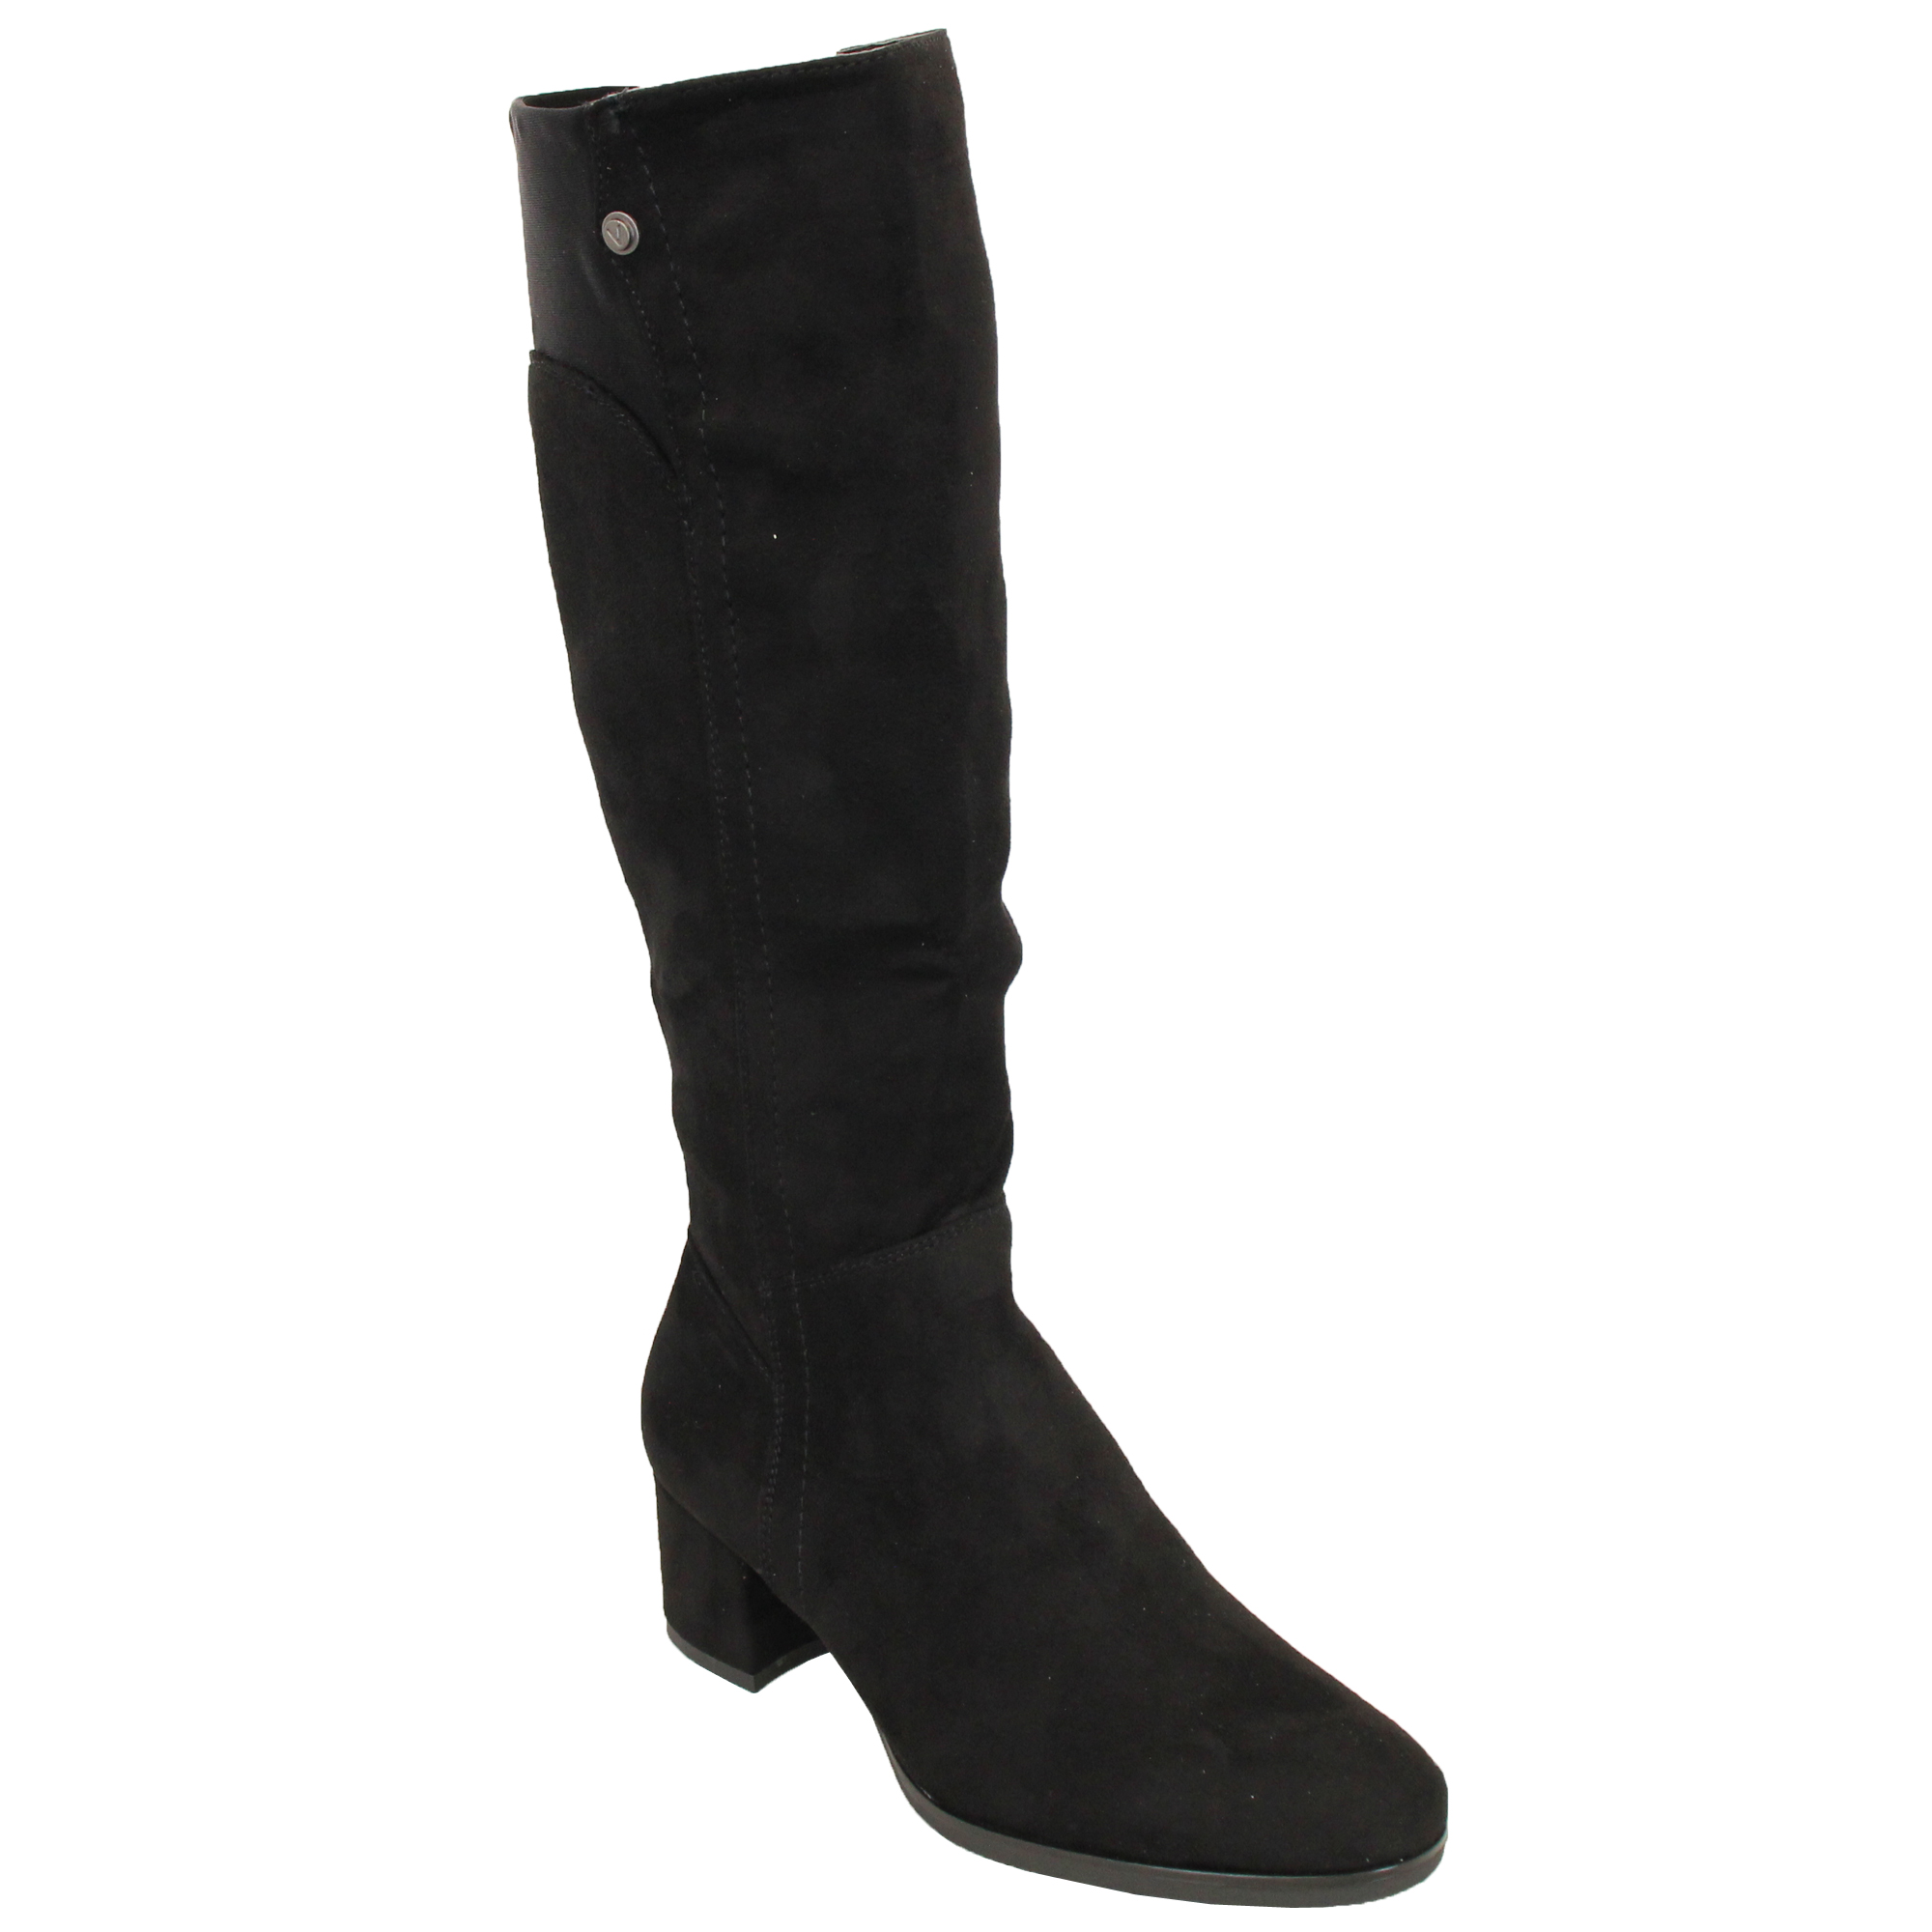 d4bf973b912 Ladies Knee Calf Length Boots Womens Long Suede Look Block Heel ...